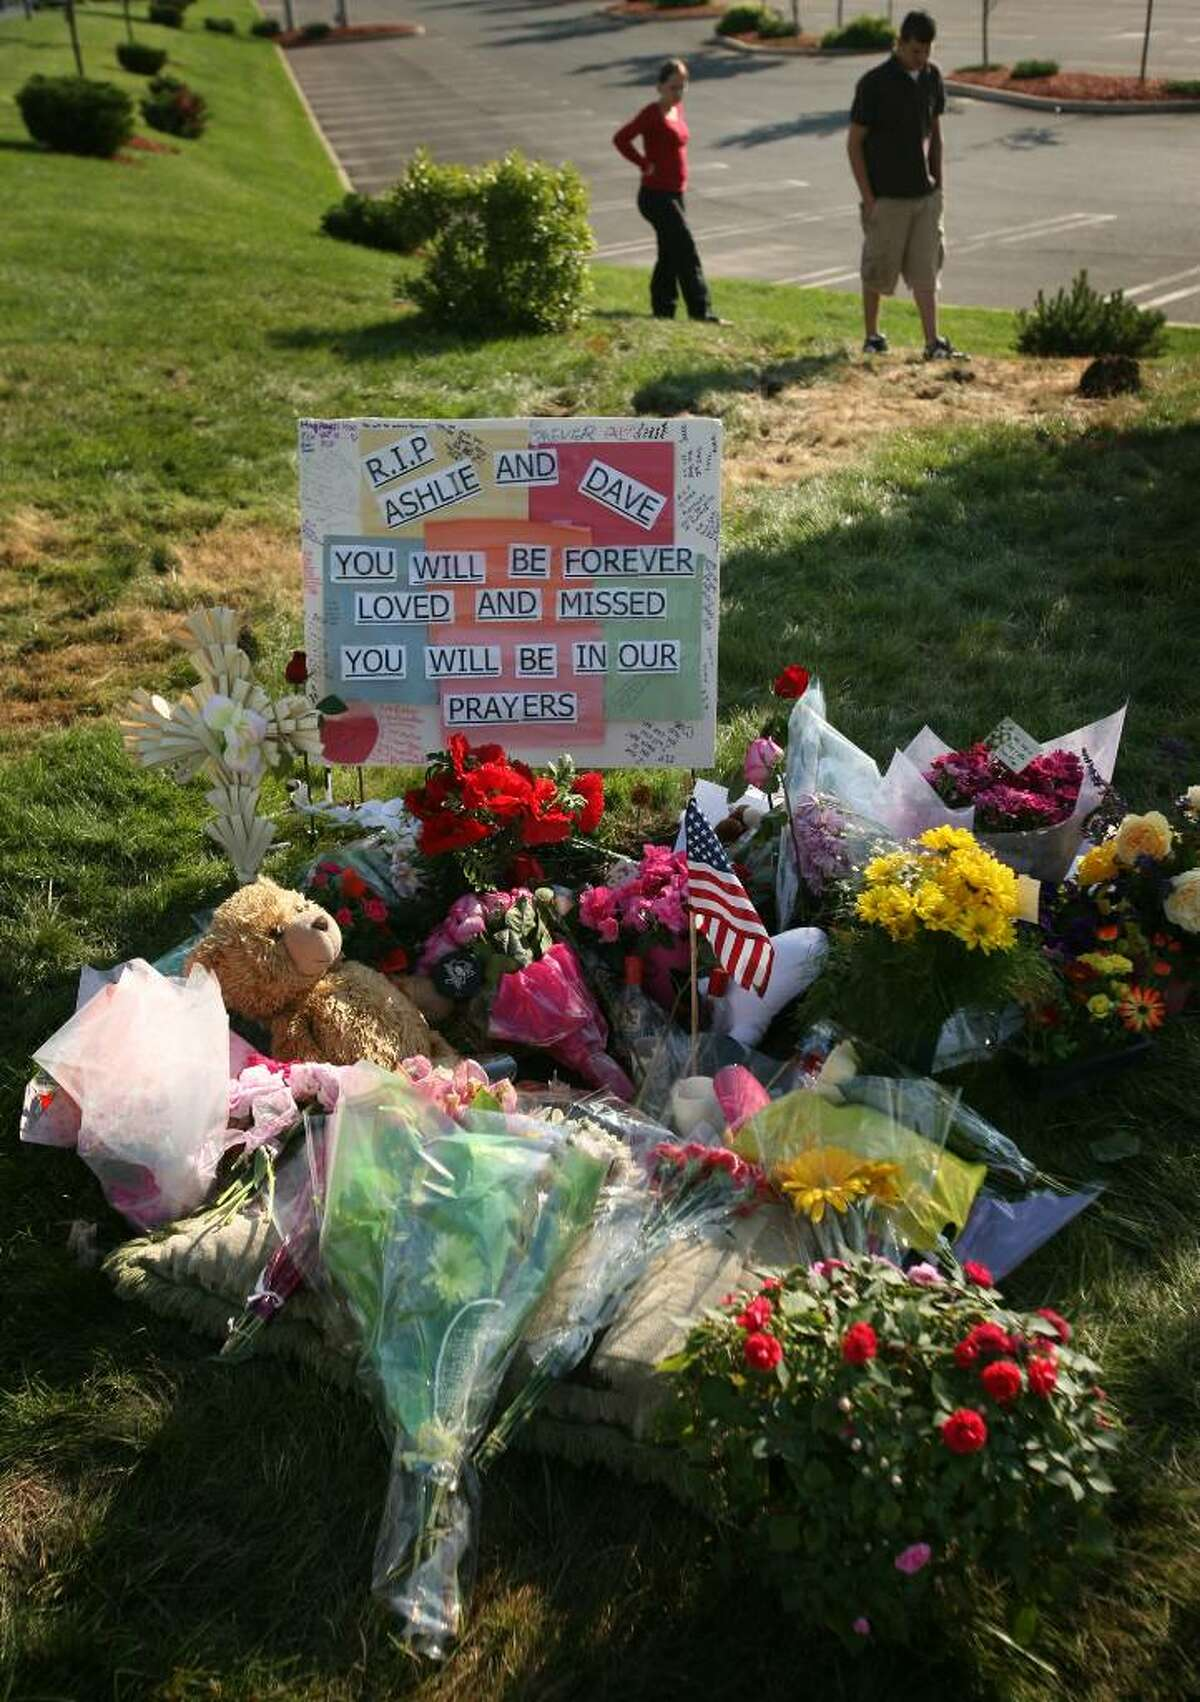 A memorial of flowers and other mementos rests along Route 1 in Orange, the site of a crash with a Milford police cruiser that took the lives of Orange teens David Servin and Ashlie Krakowski.